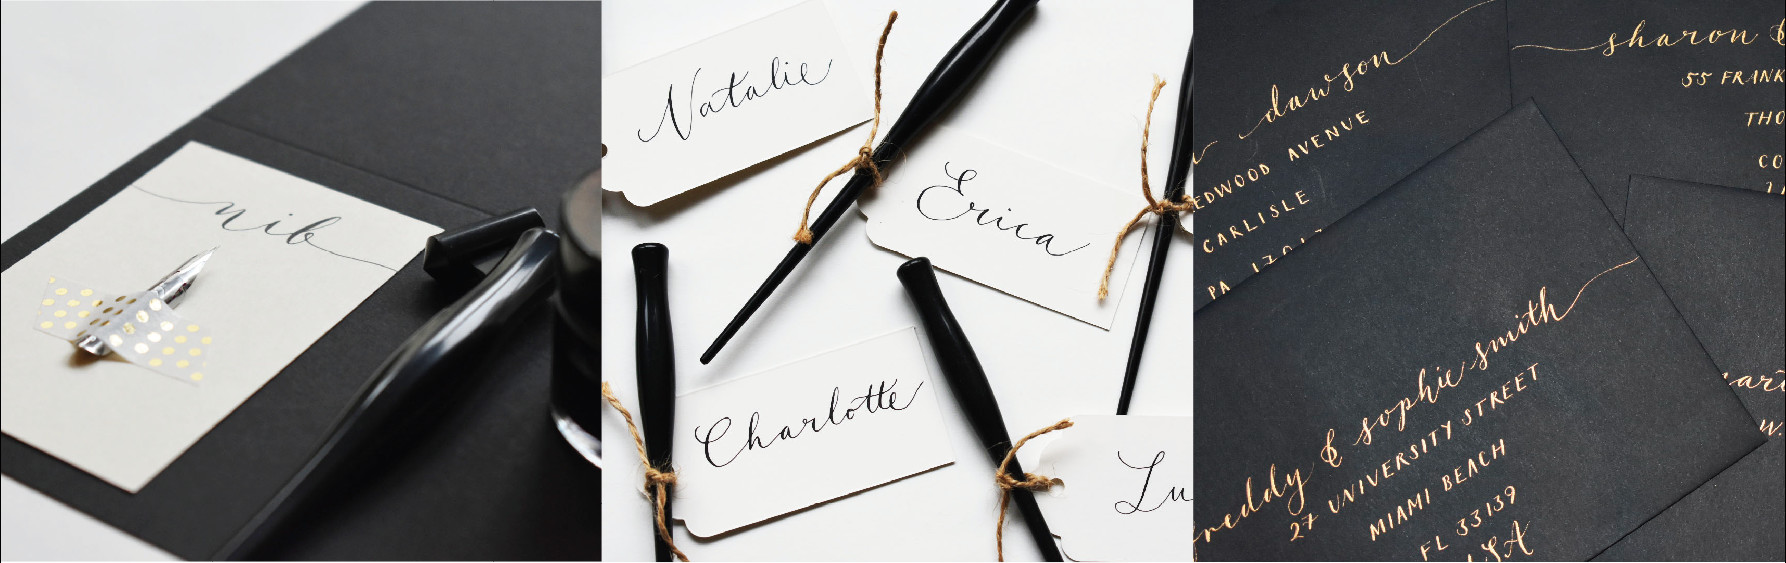 Wedding Calligraphy Workshop by Babooche Calligraphy - art in London